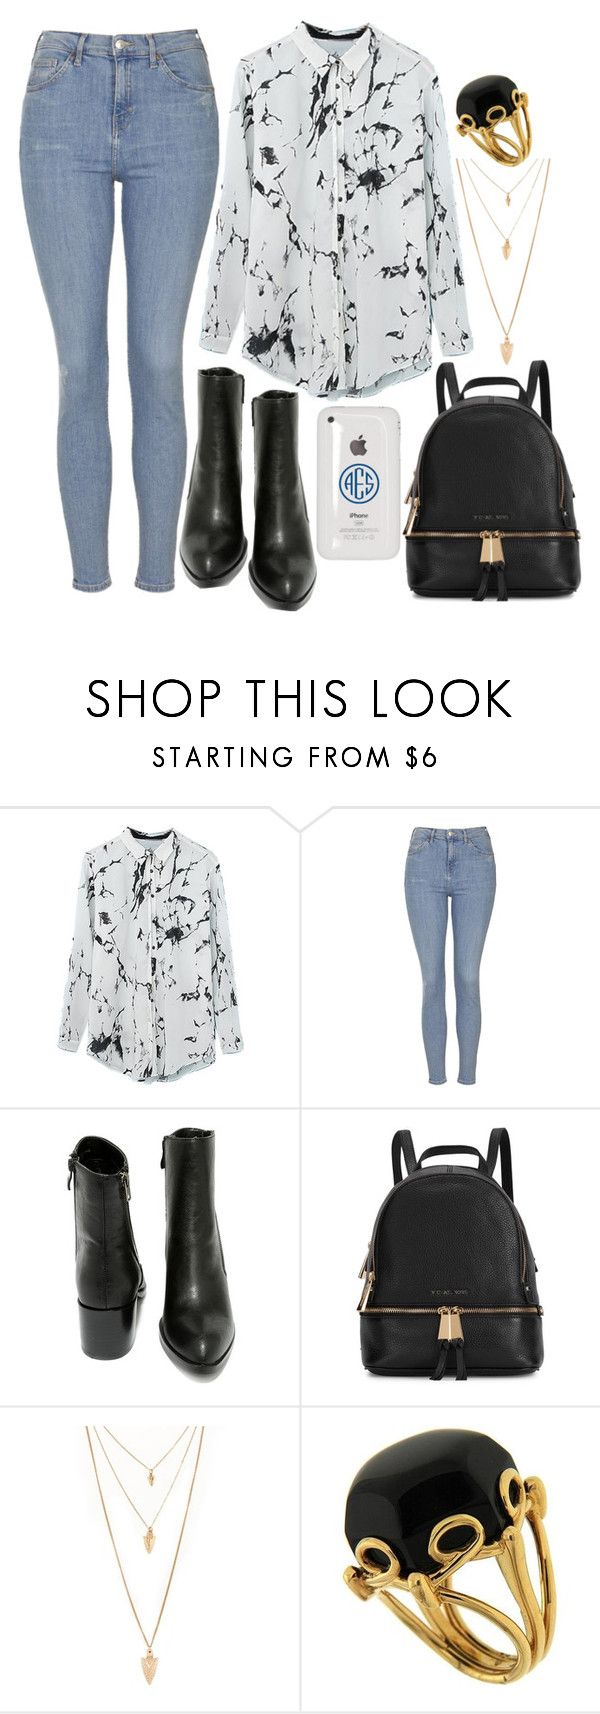 """Untitled #27"" by simplyjellybean ❤ liked on Polyvore featuring Topshop, Very Volatile, Michael Kors, Forever 21, Valentin Magro, women's clothing, women, female, woman and misses"